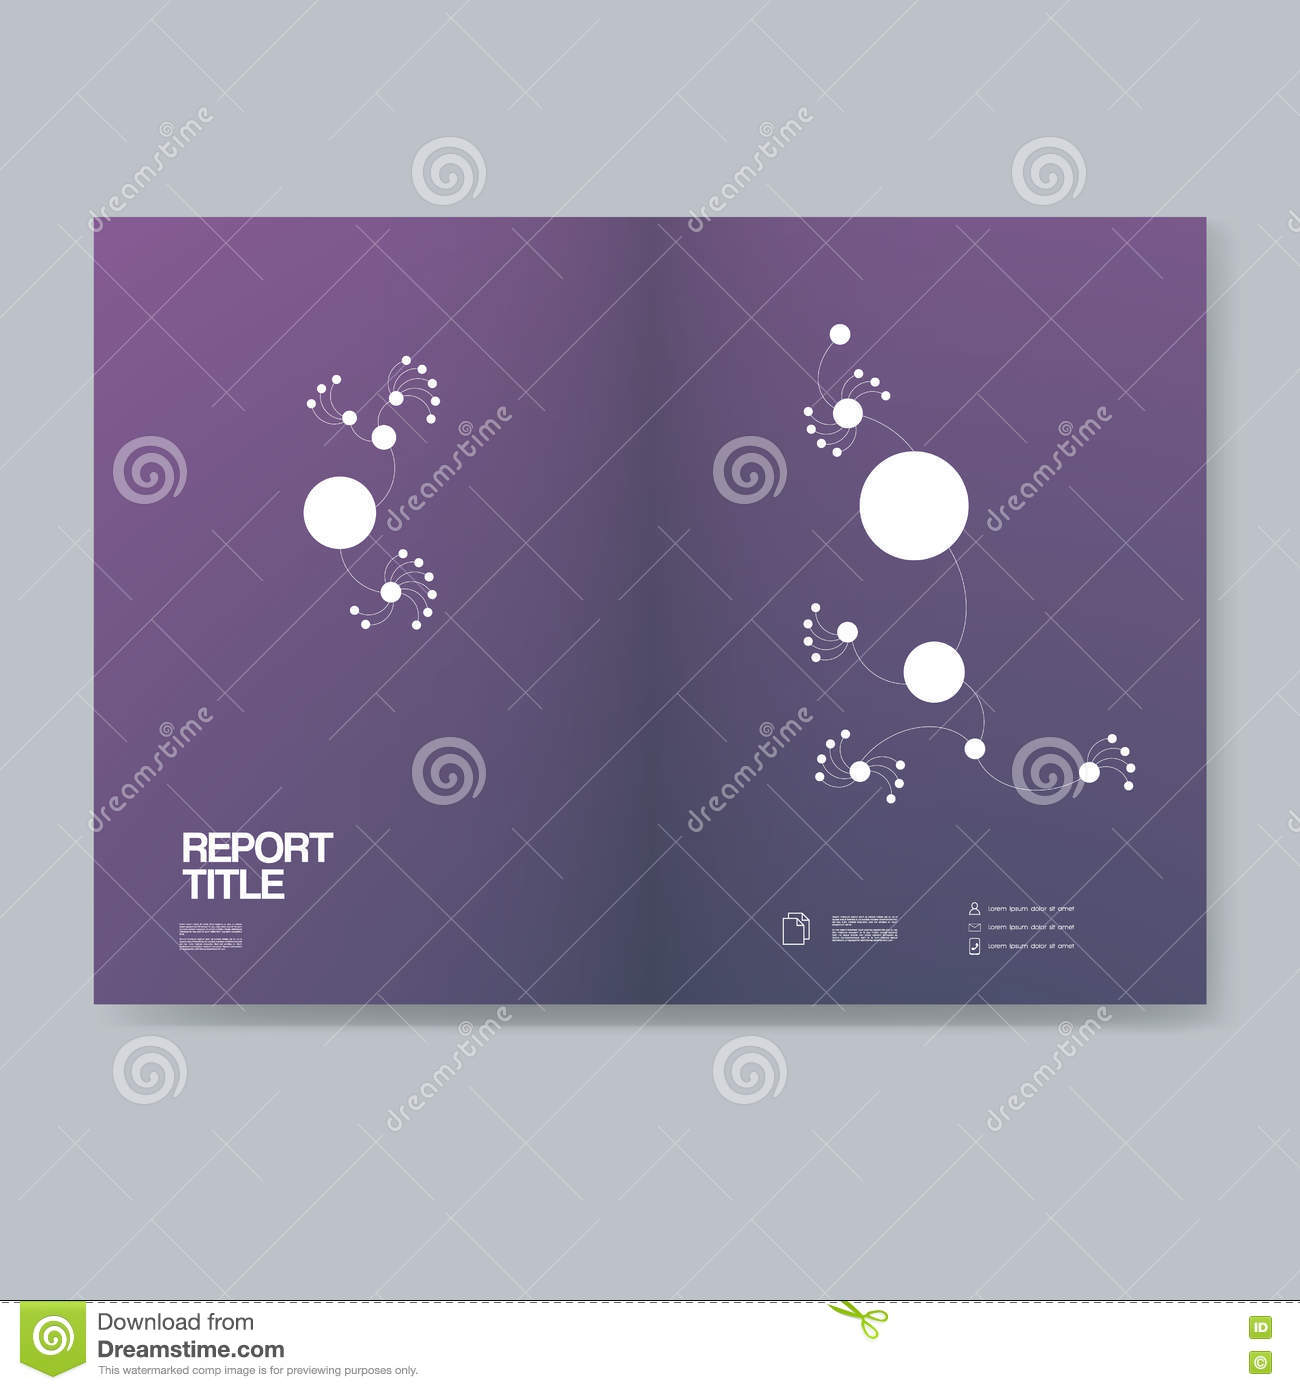 dark elegant annual report cover for business presentation dark elegant annual report cover for business presentation corporate professional vector background in polygonal style